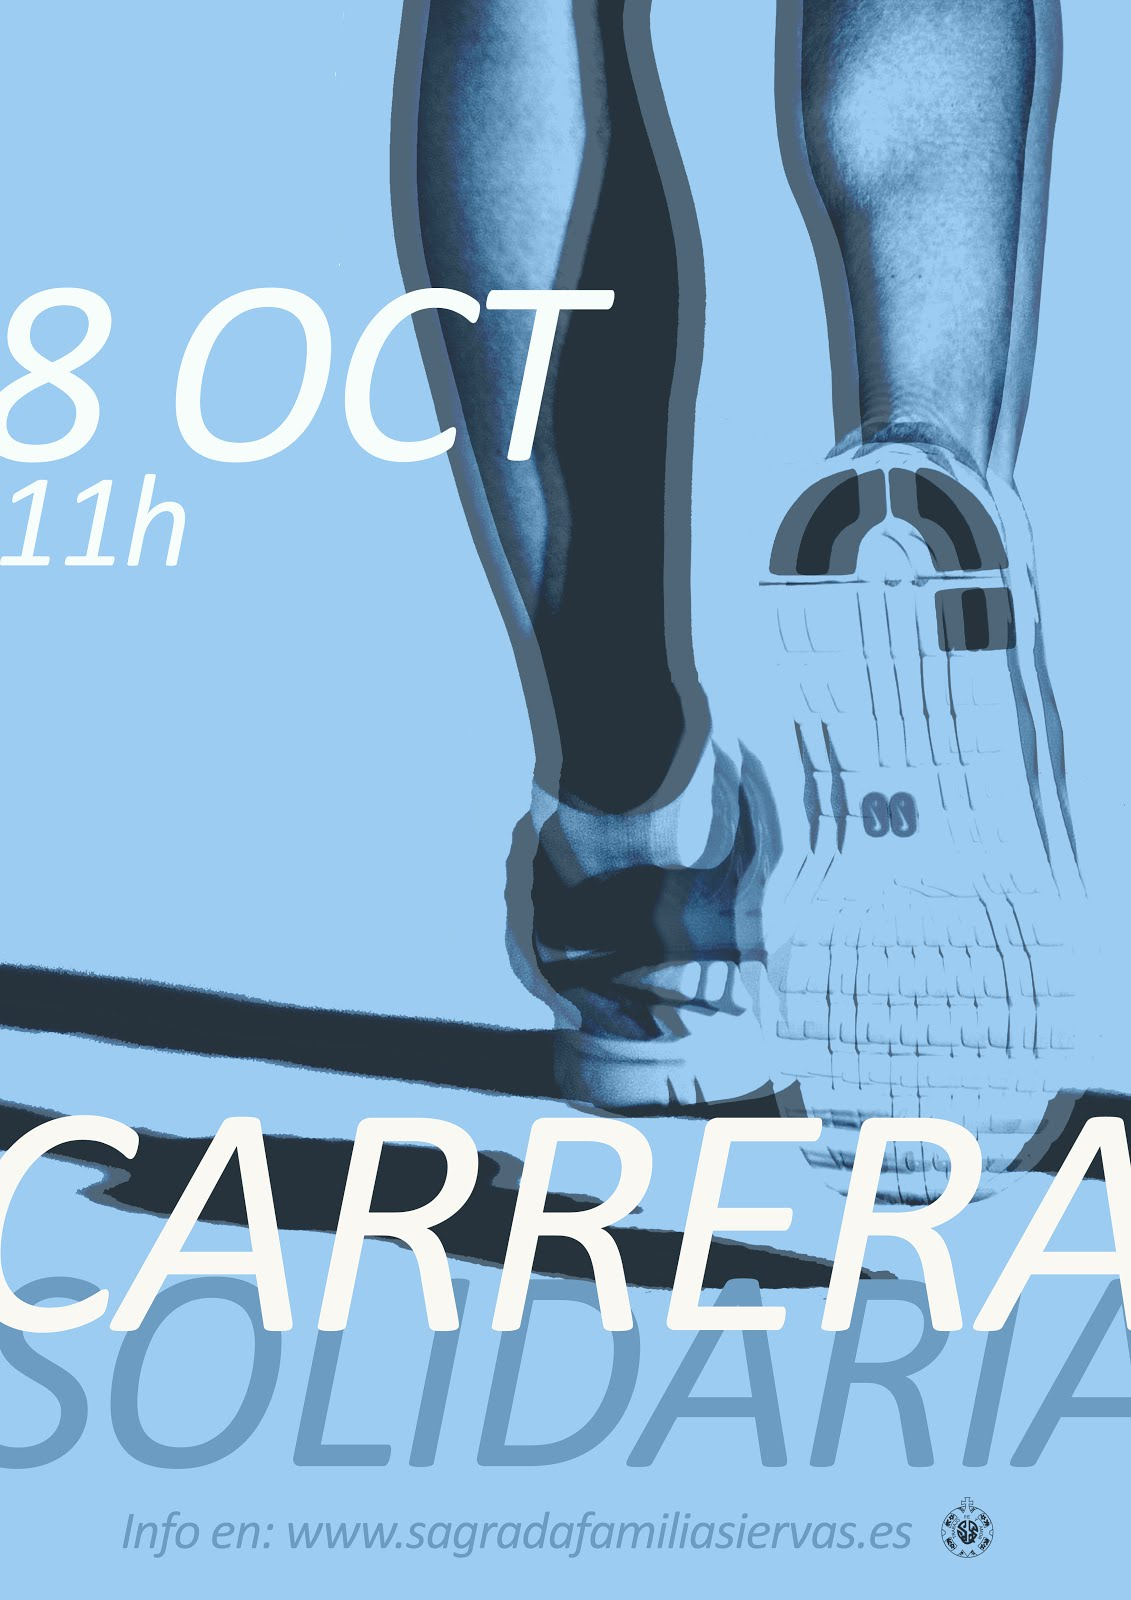 Carrera Solidaria - dom. 8 oct., 11:00h